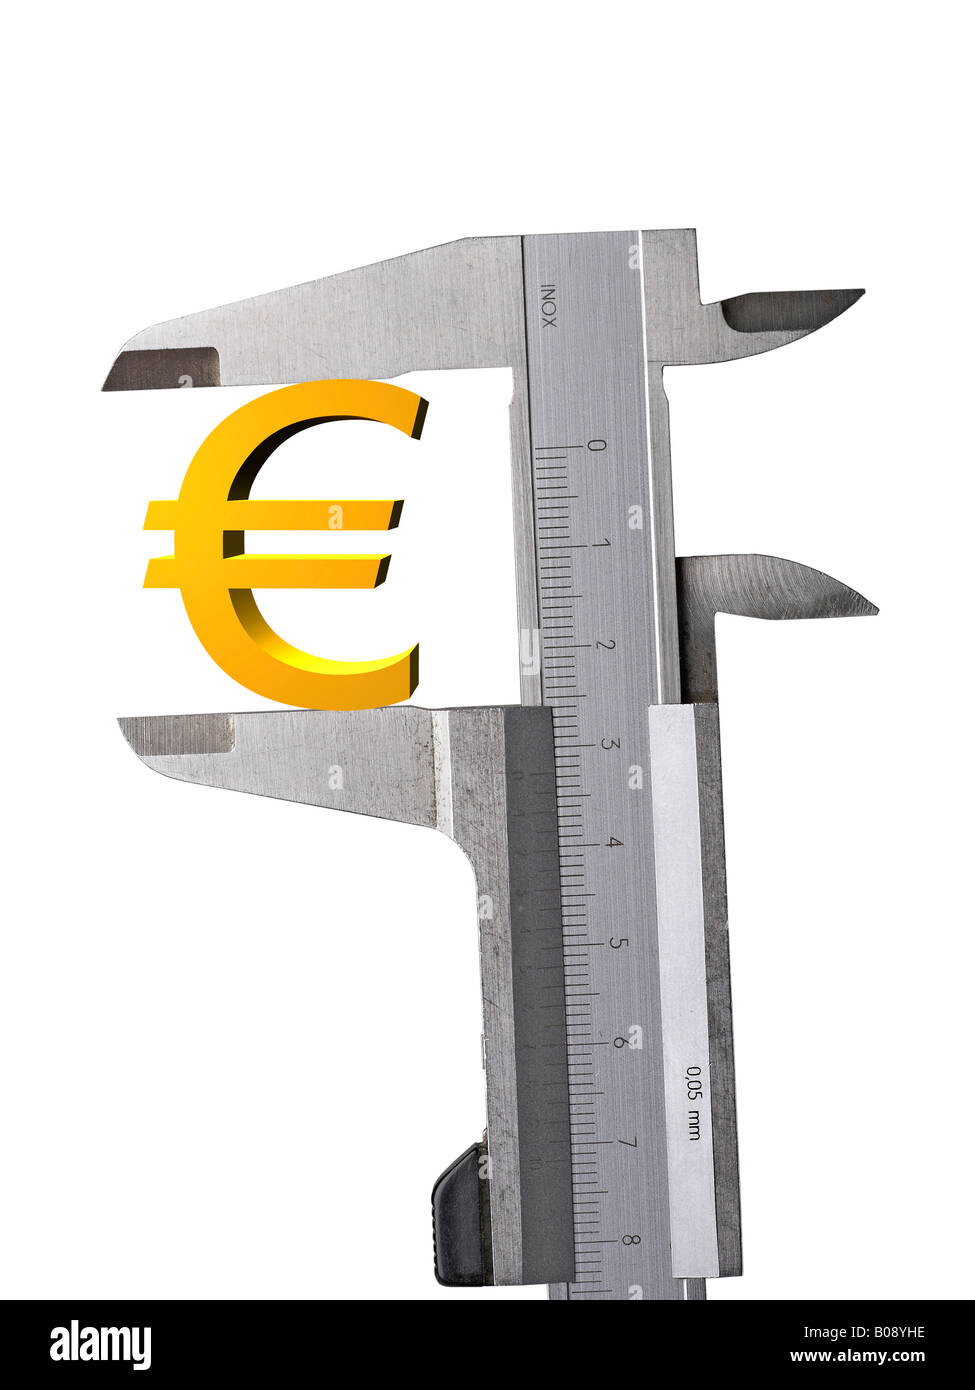 Euro symbol held between a calliper, cutout - Stock Image